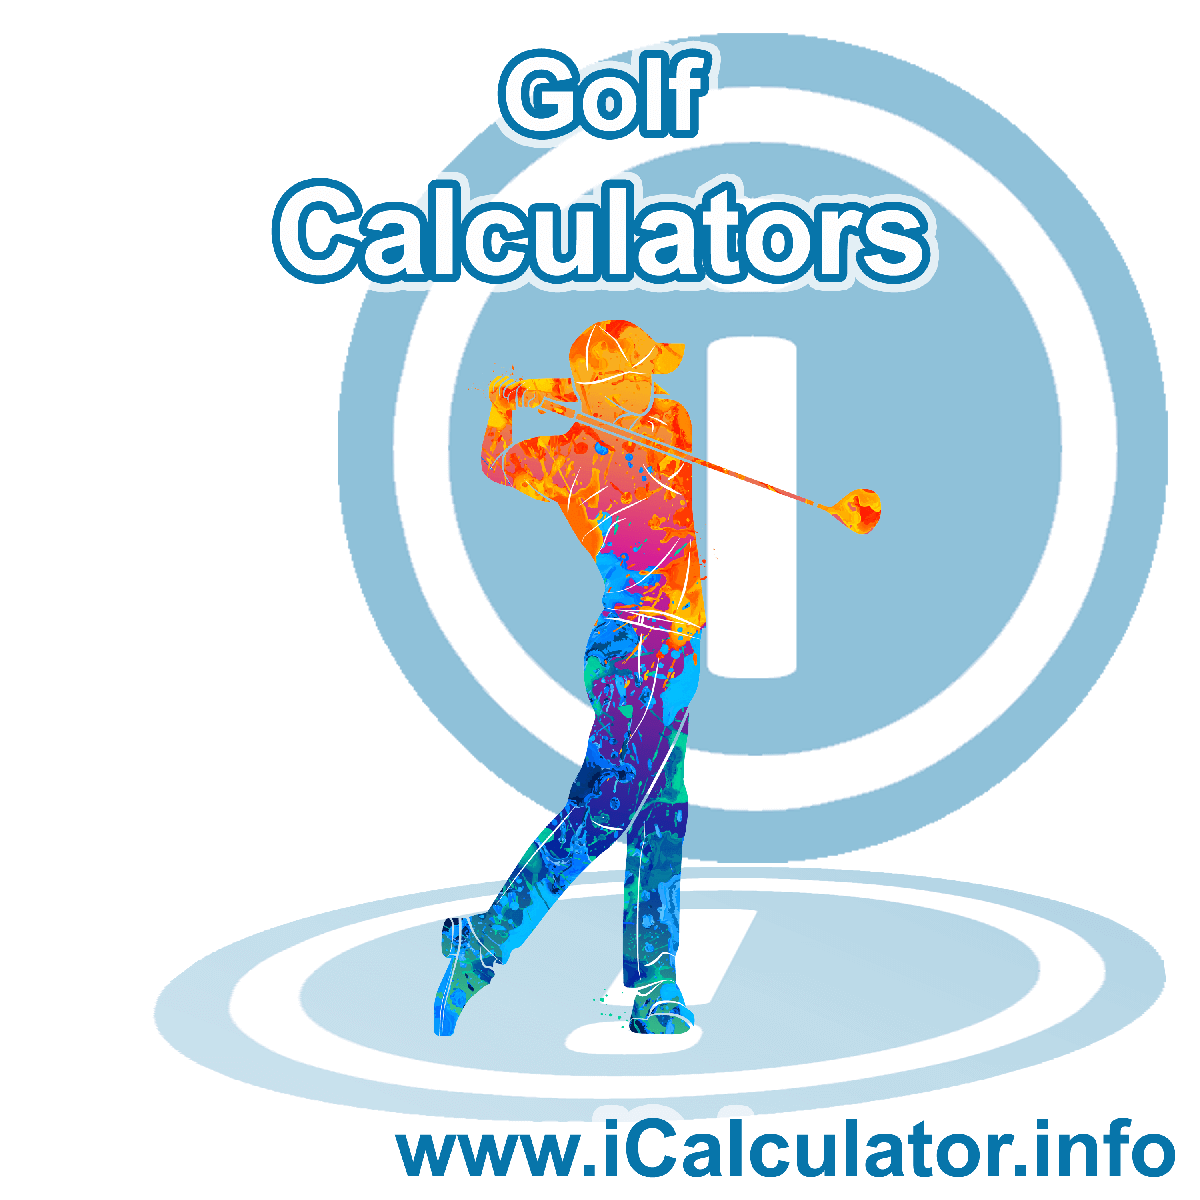 Golf Calculator. This image shows an Golf player playing golf - by iCalculator